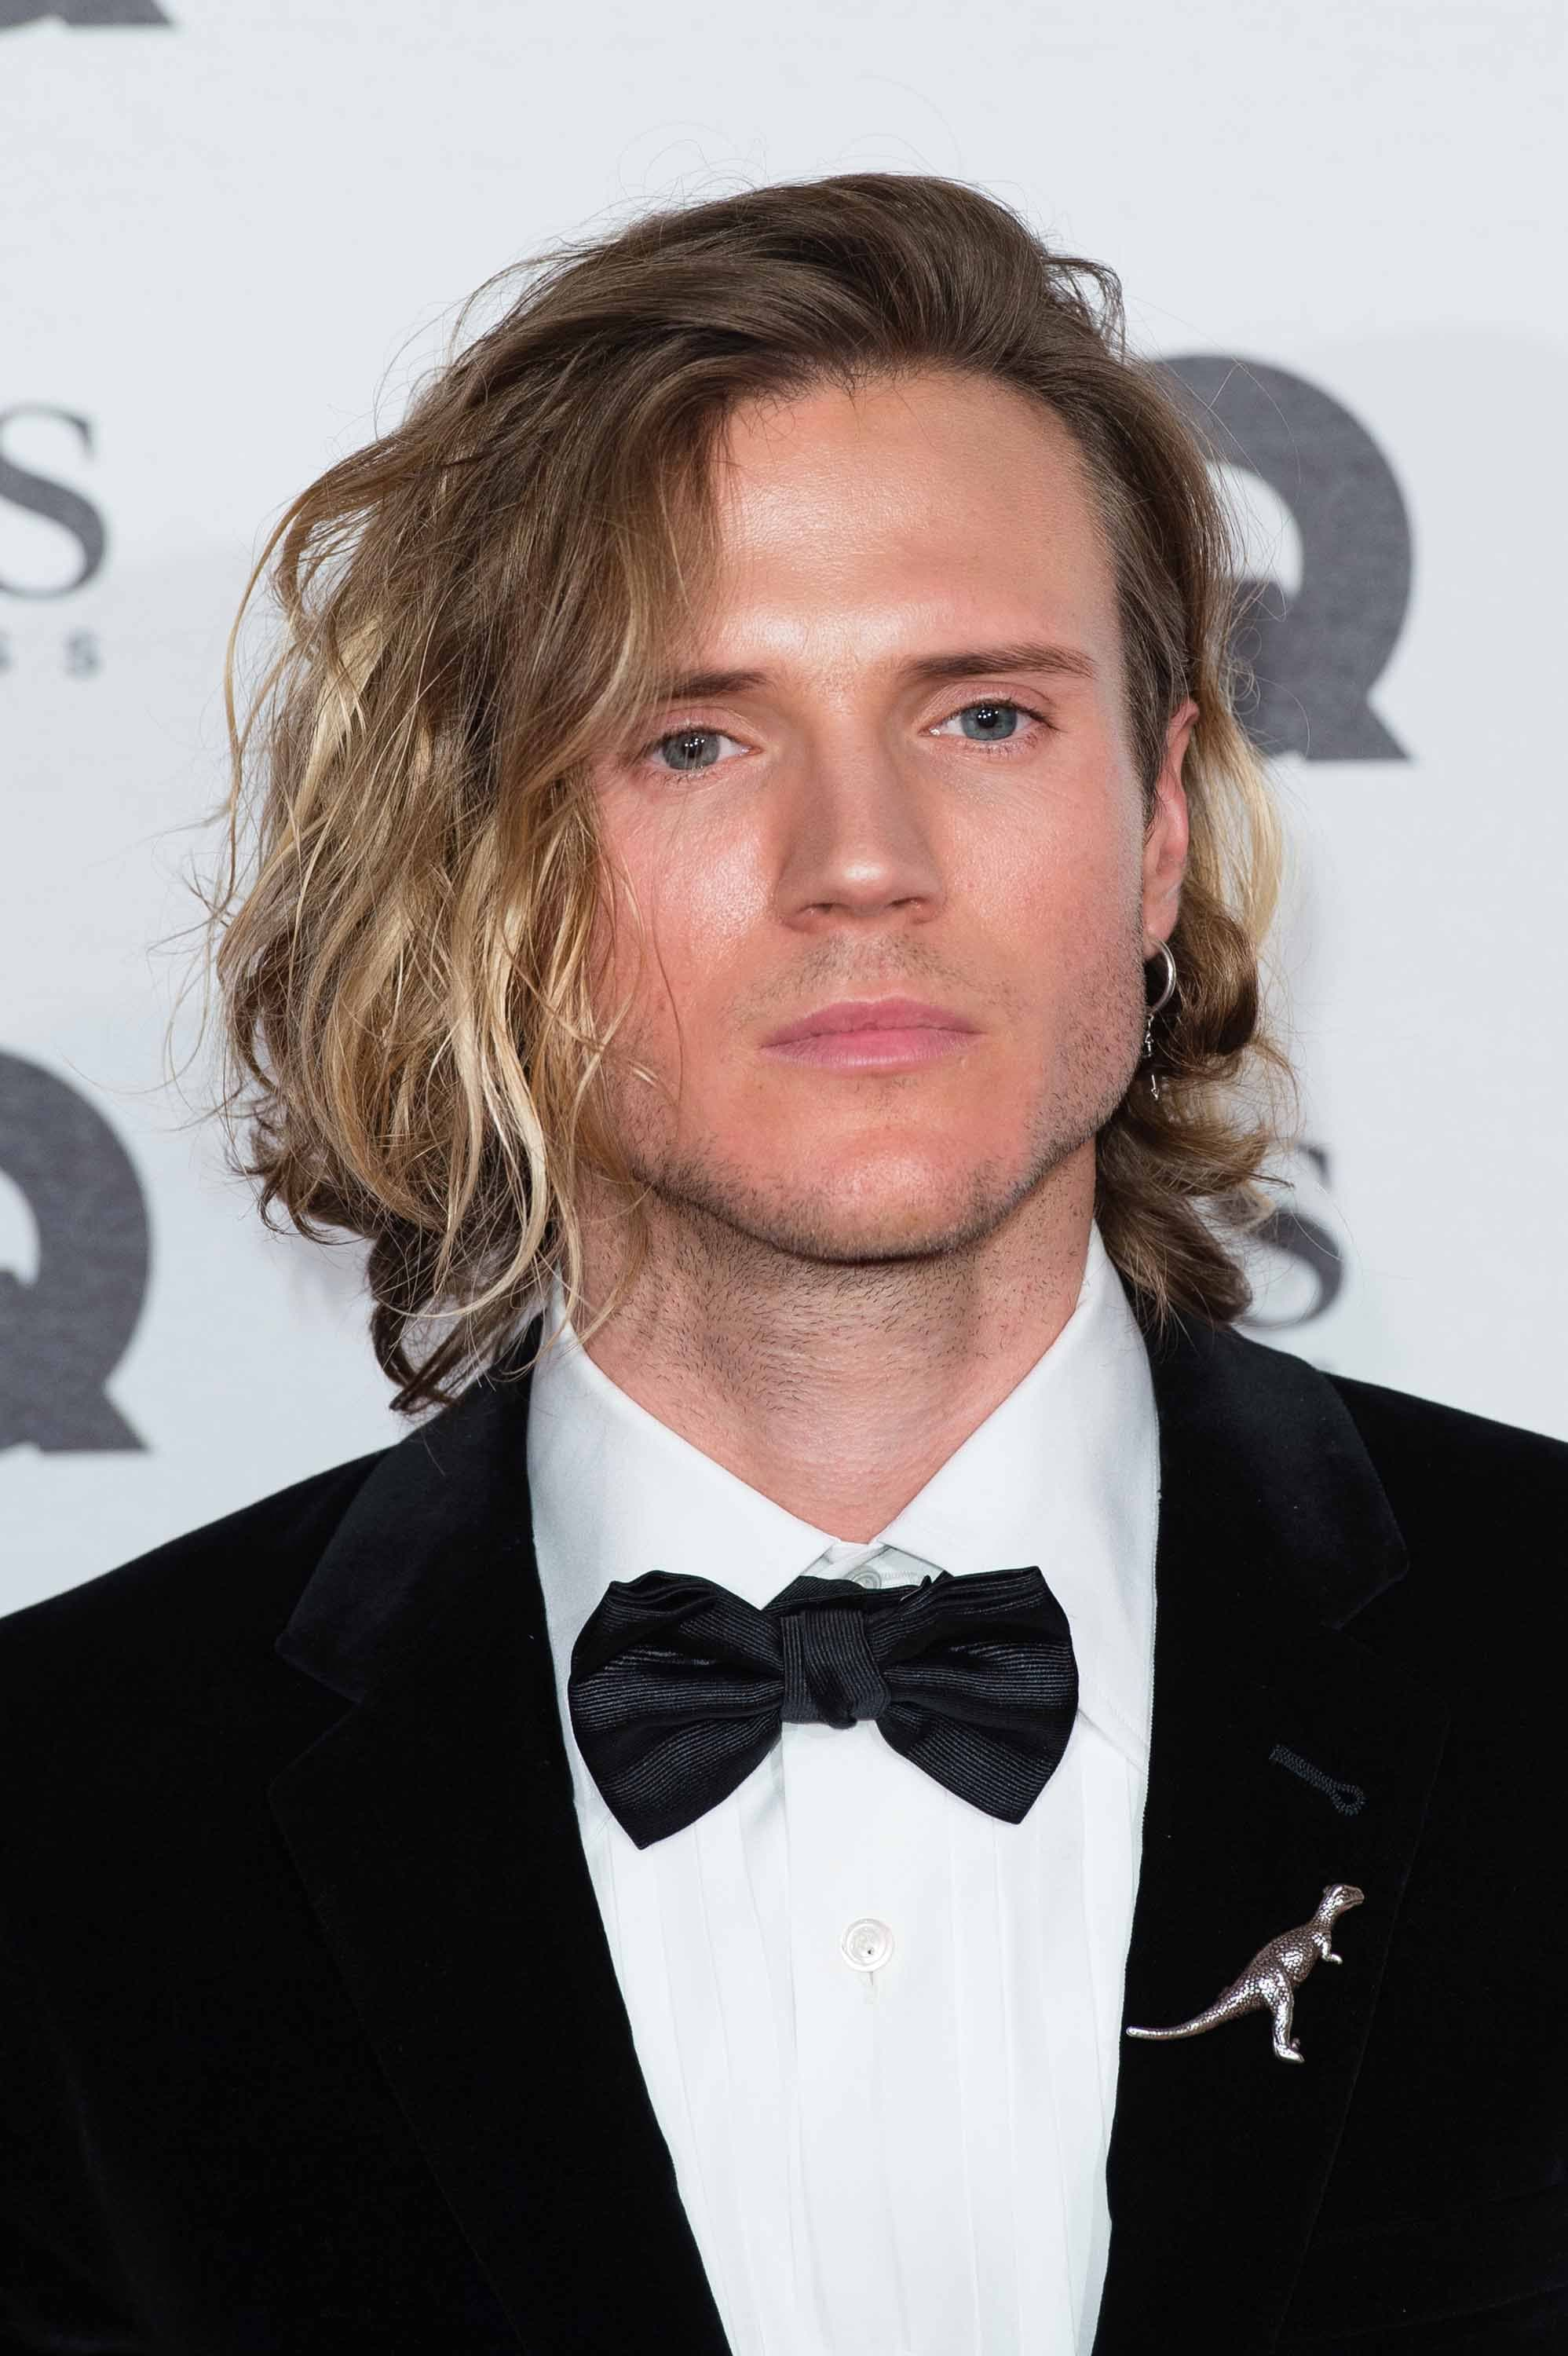 mens hair Dougie Poynter GQ awards 2016